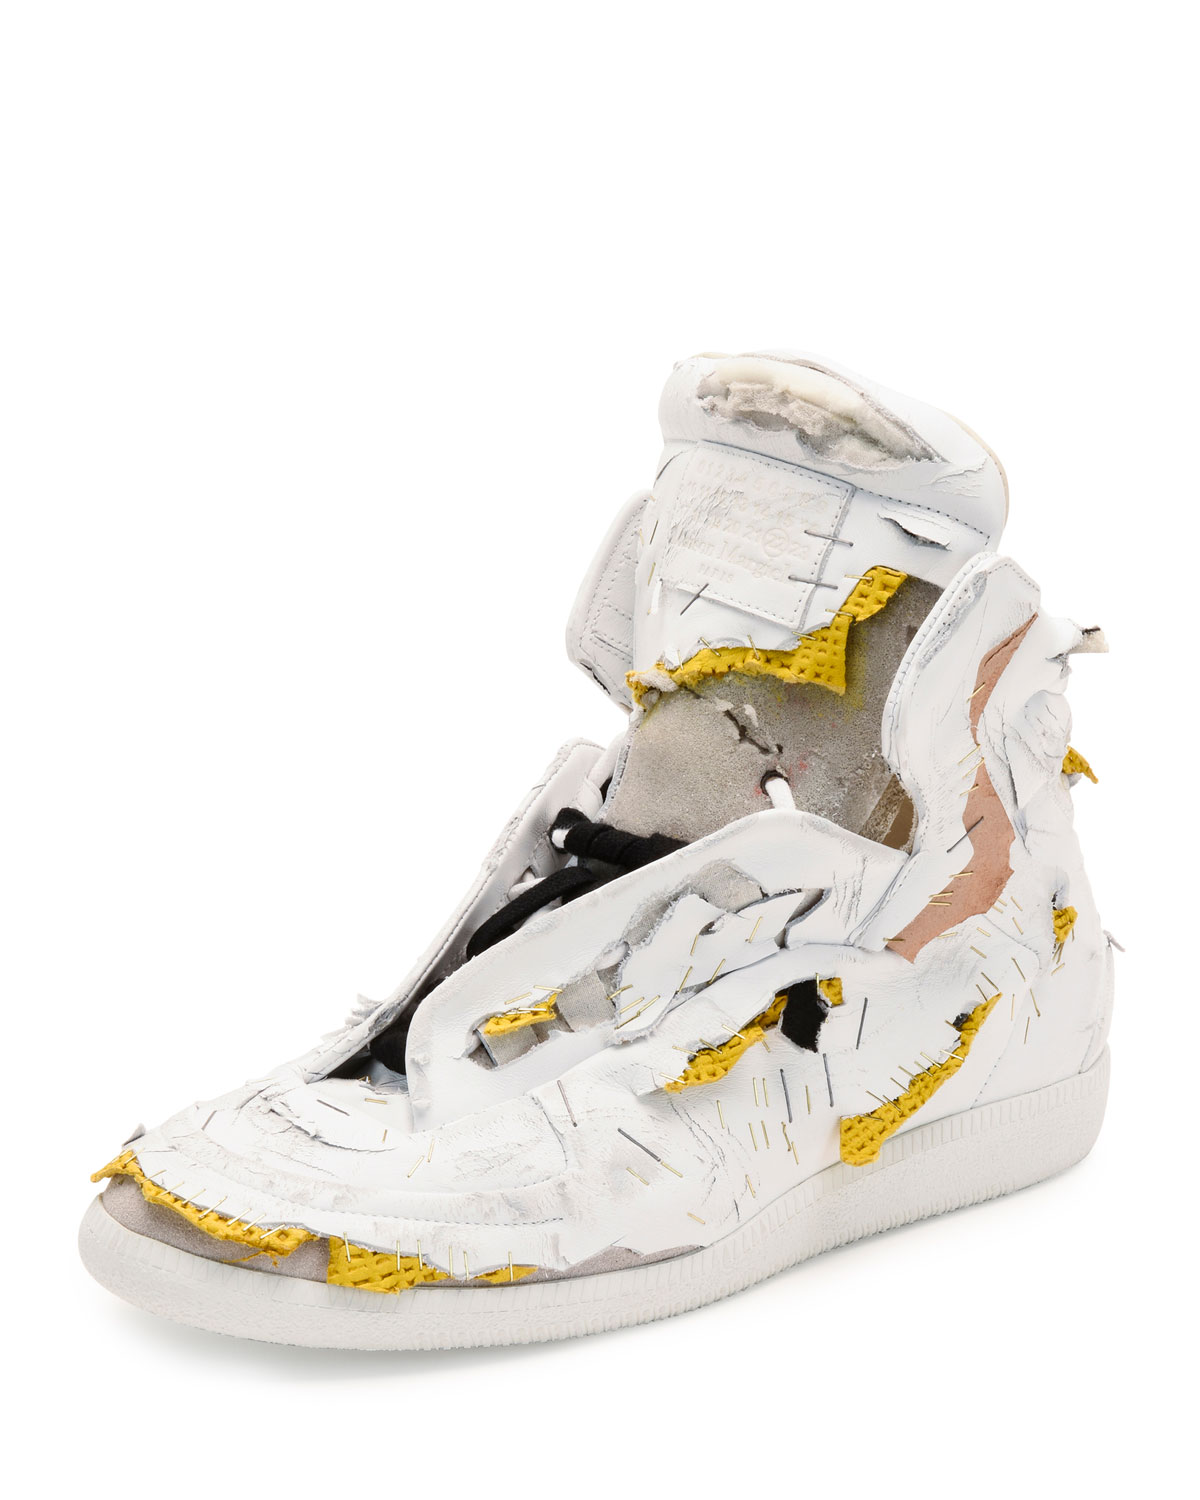 4570fe0ce41 Future Destroyed High-Top Sneaker, White/Yellow